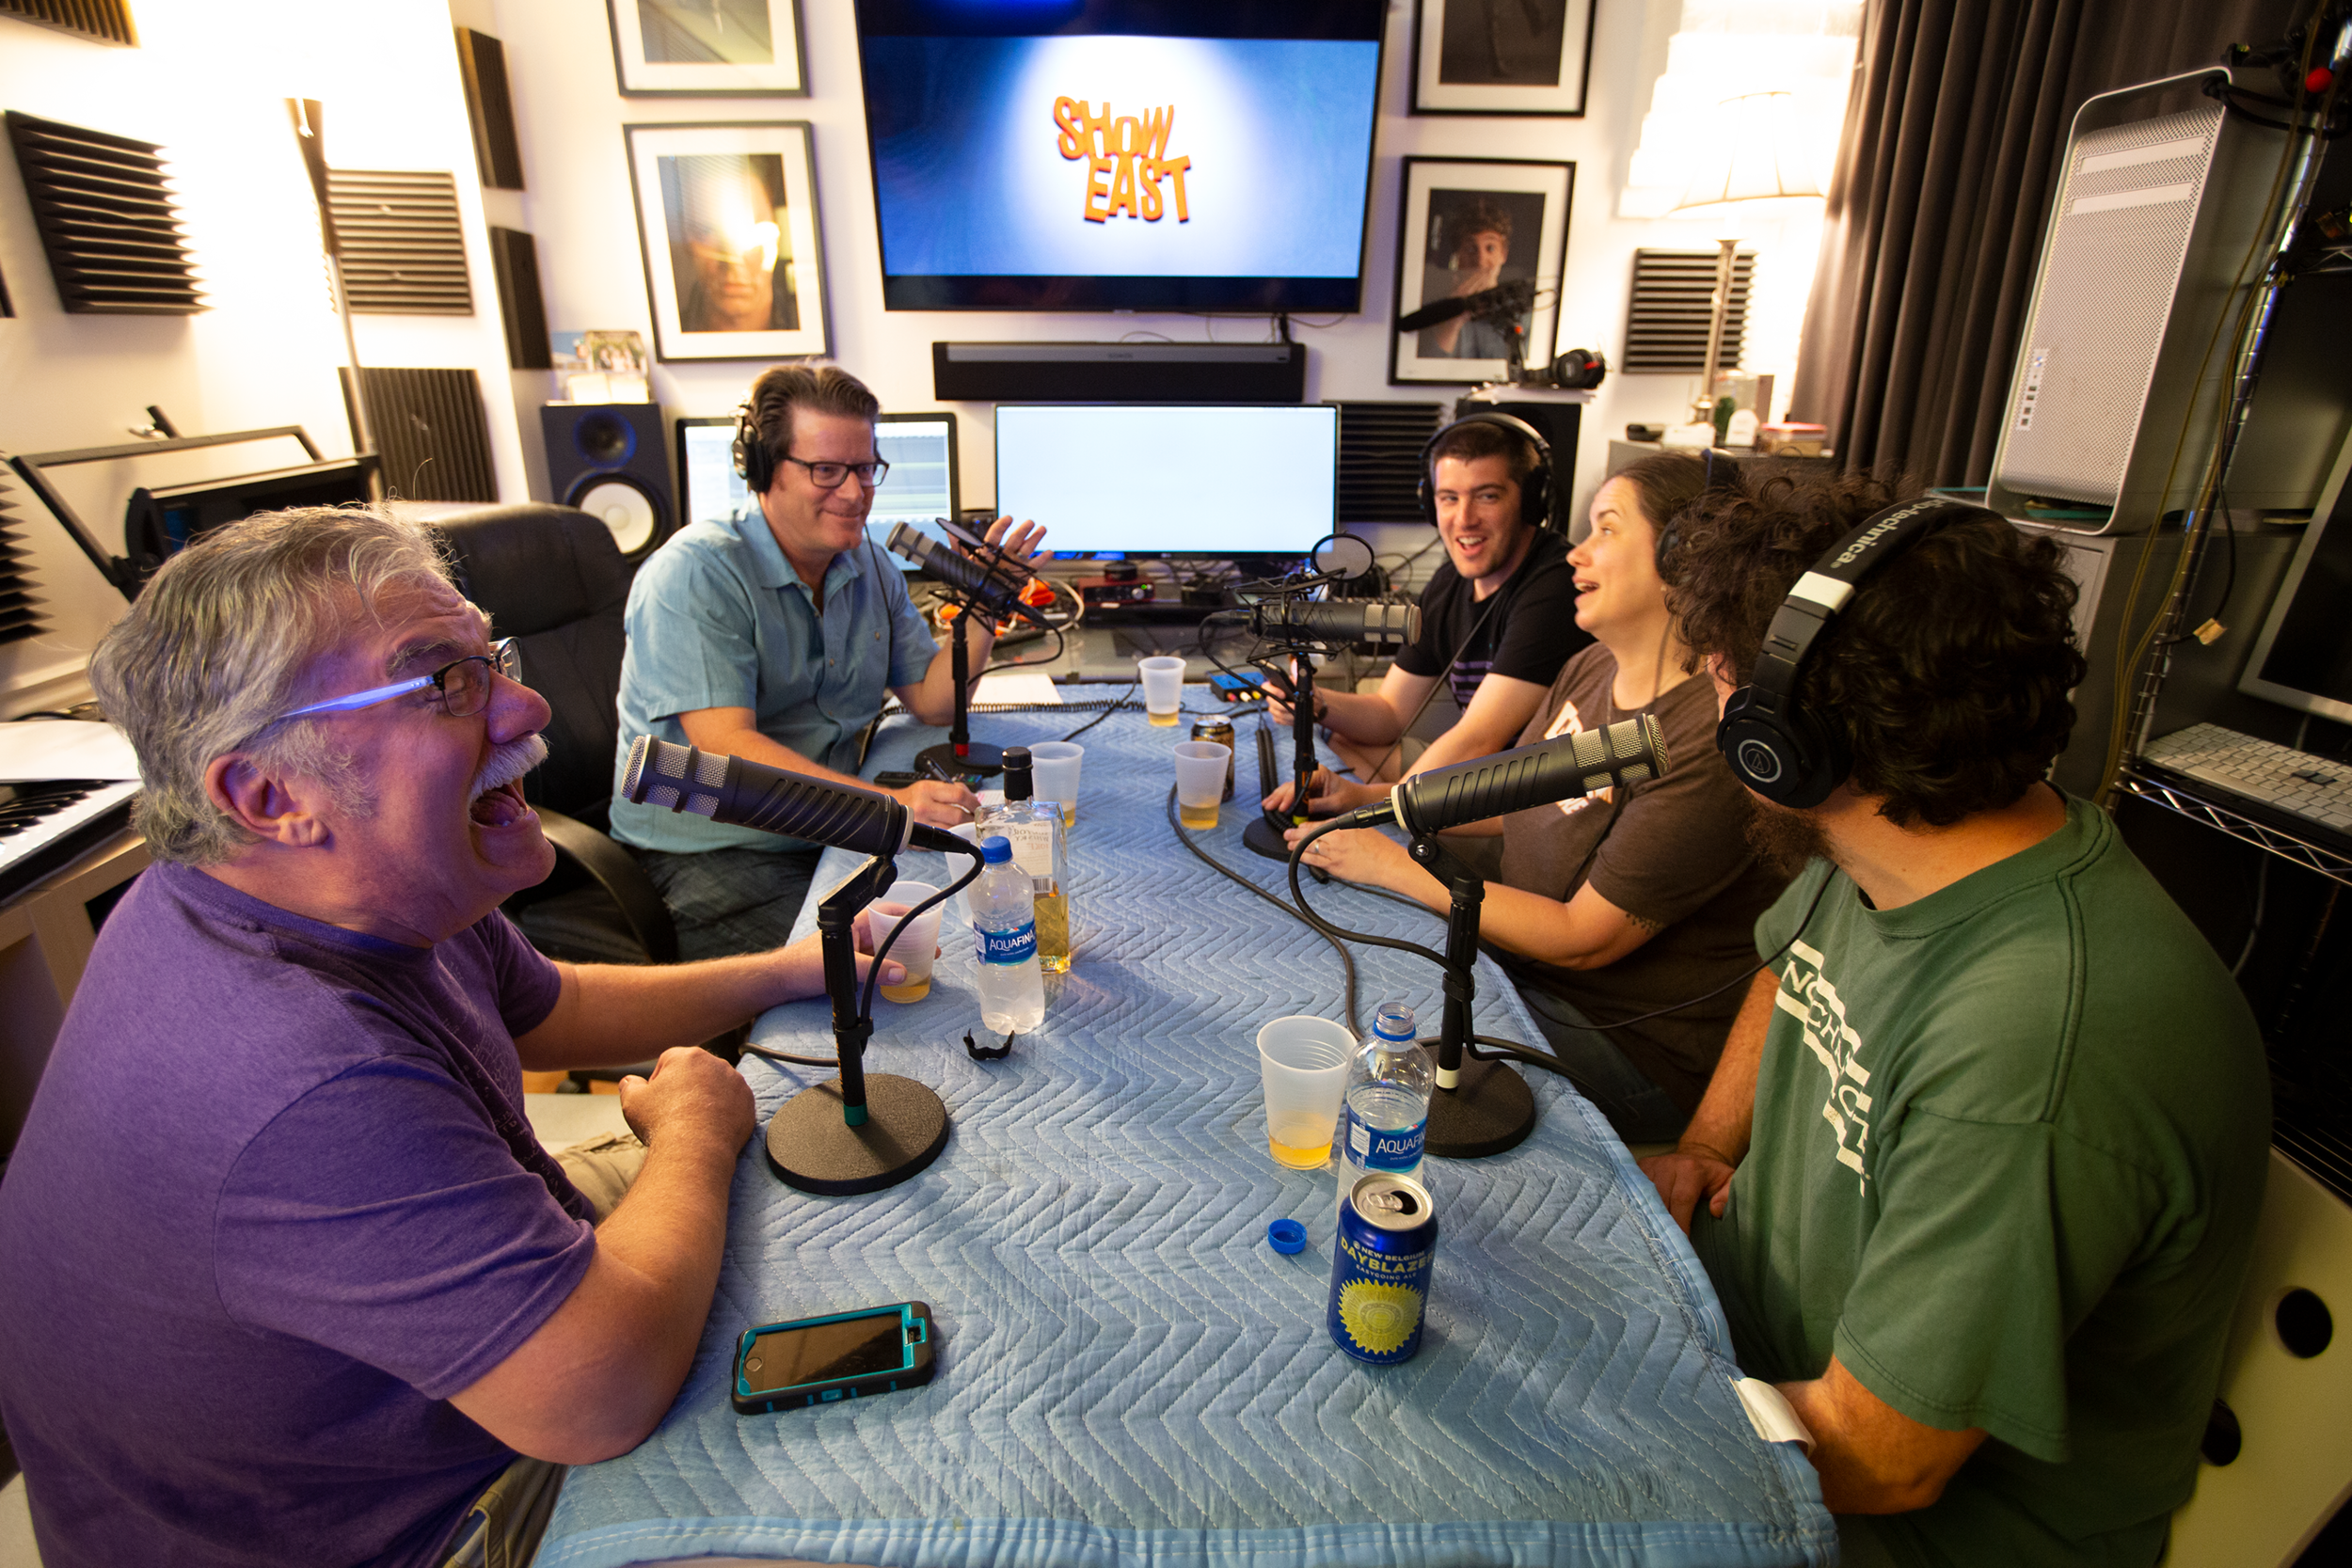 The crew of Adult Beverage Podcast talk about films new and old.